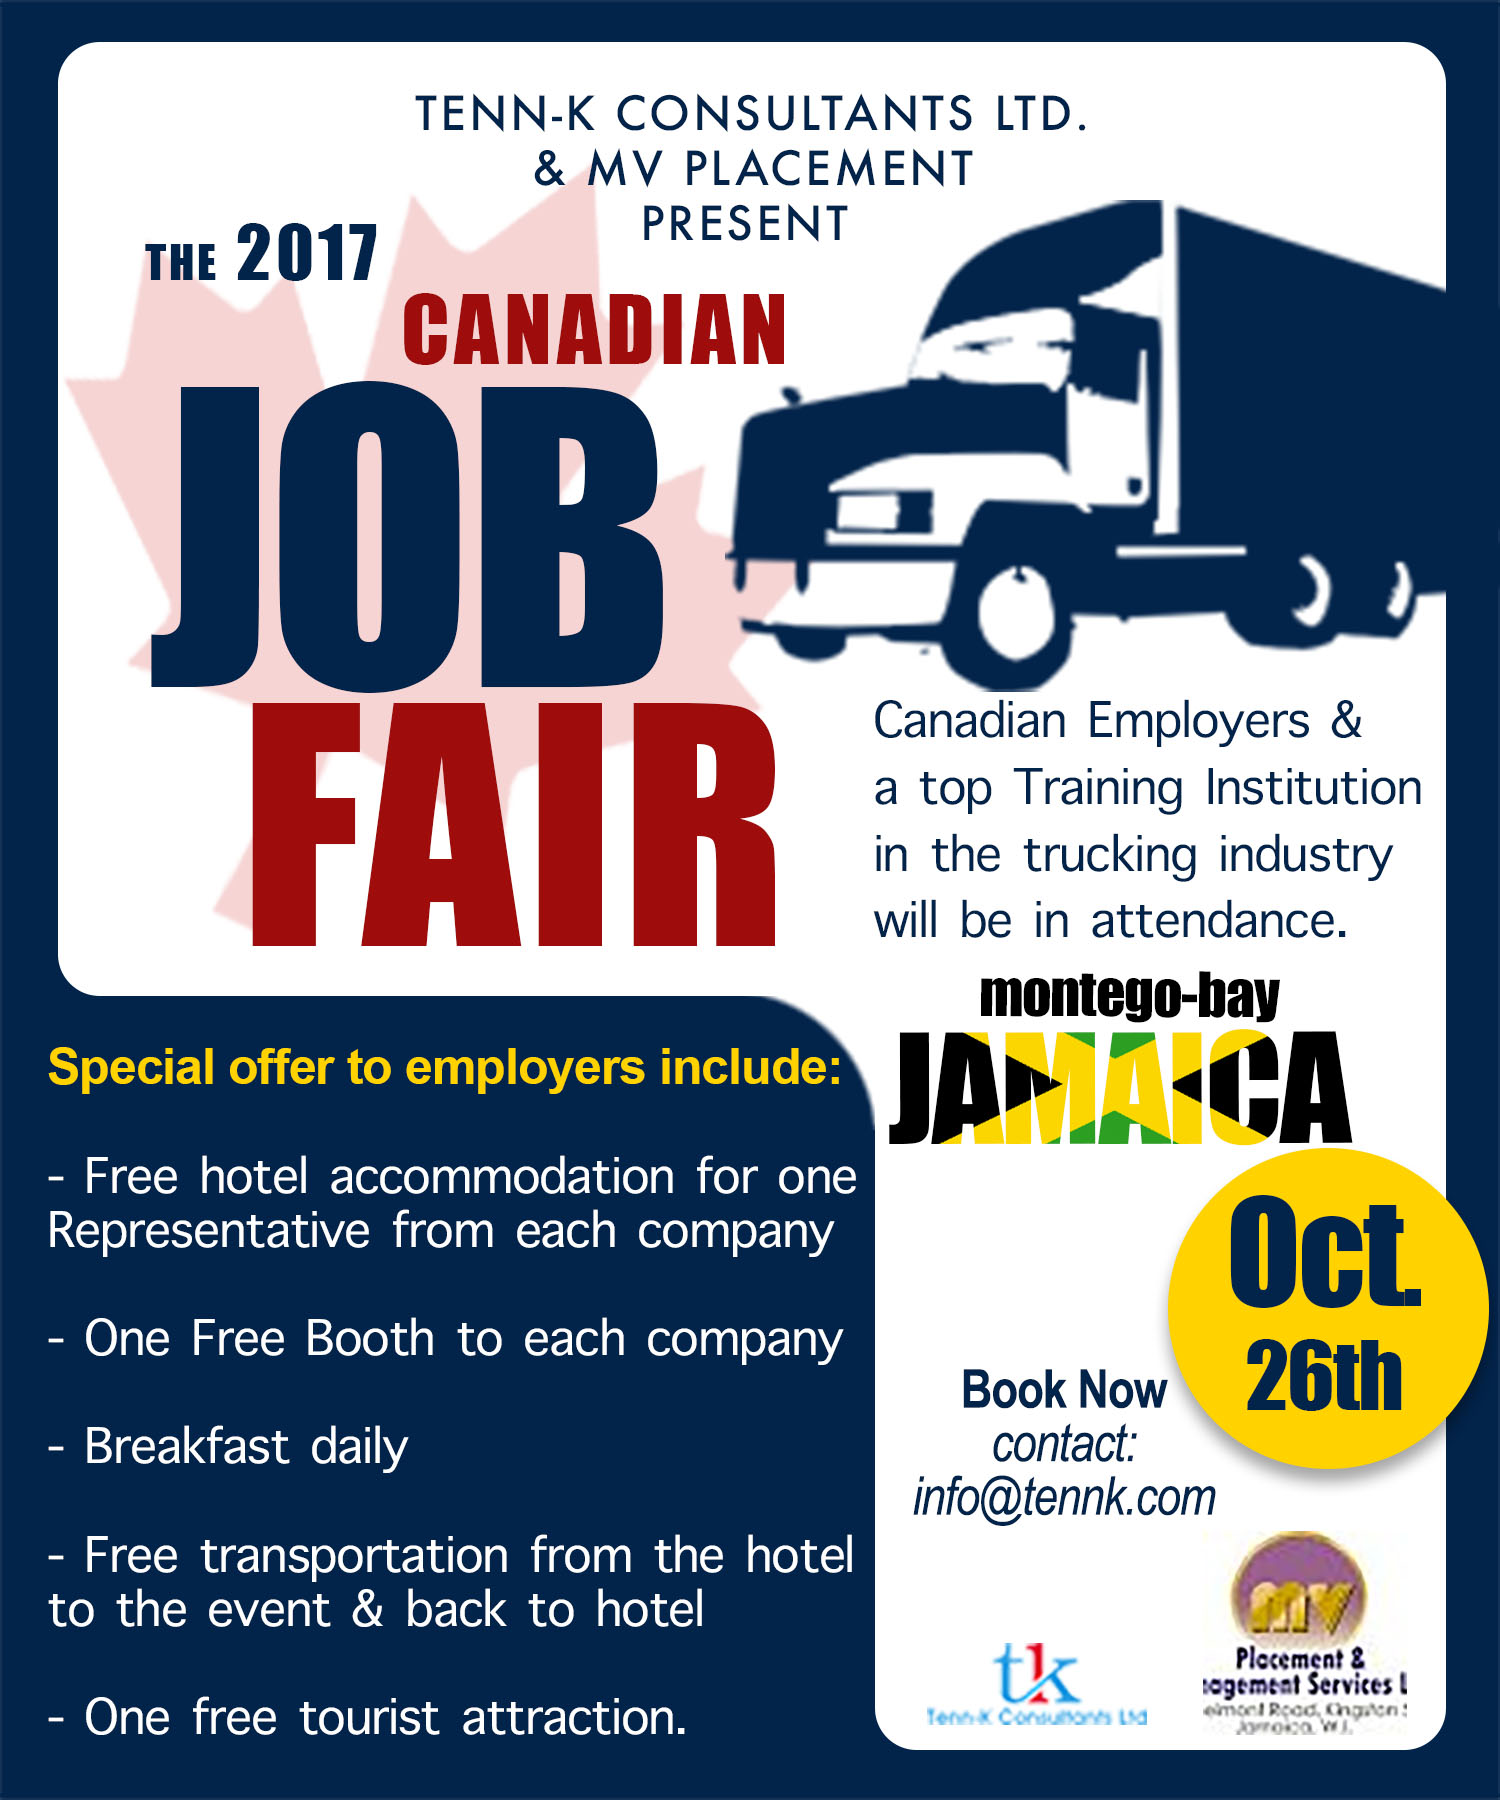 2017 Canadian Job Fair